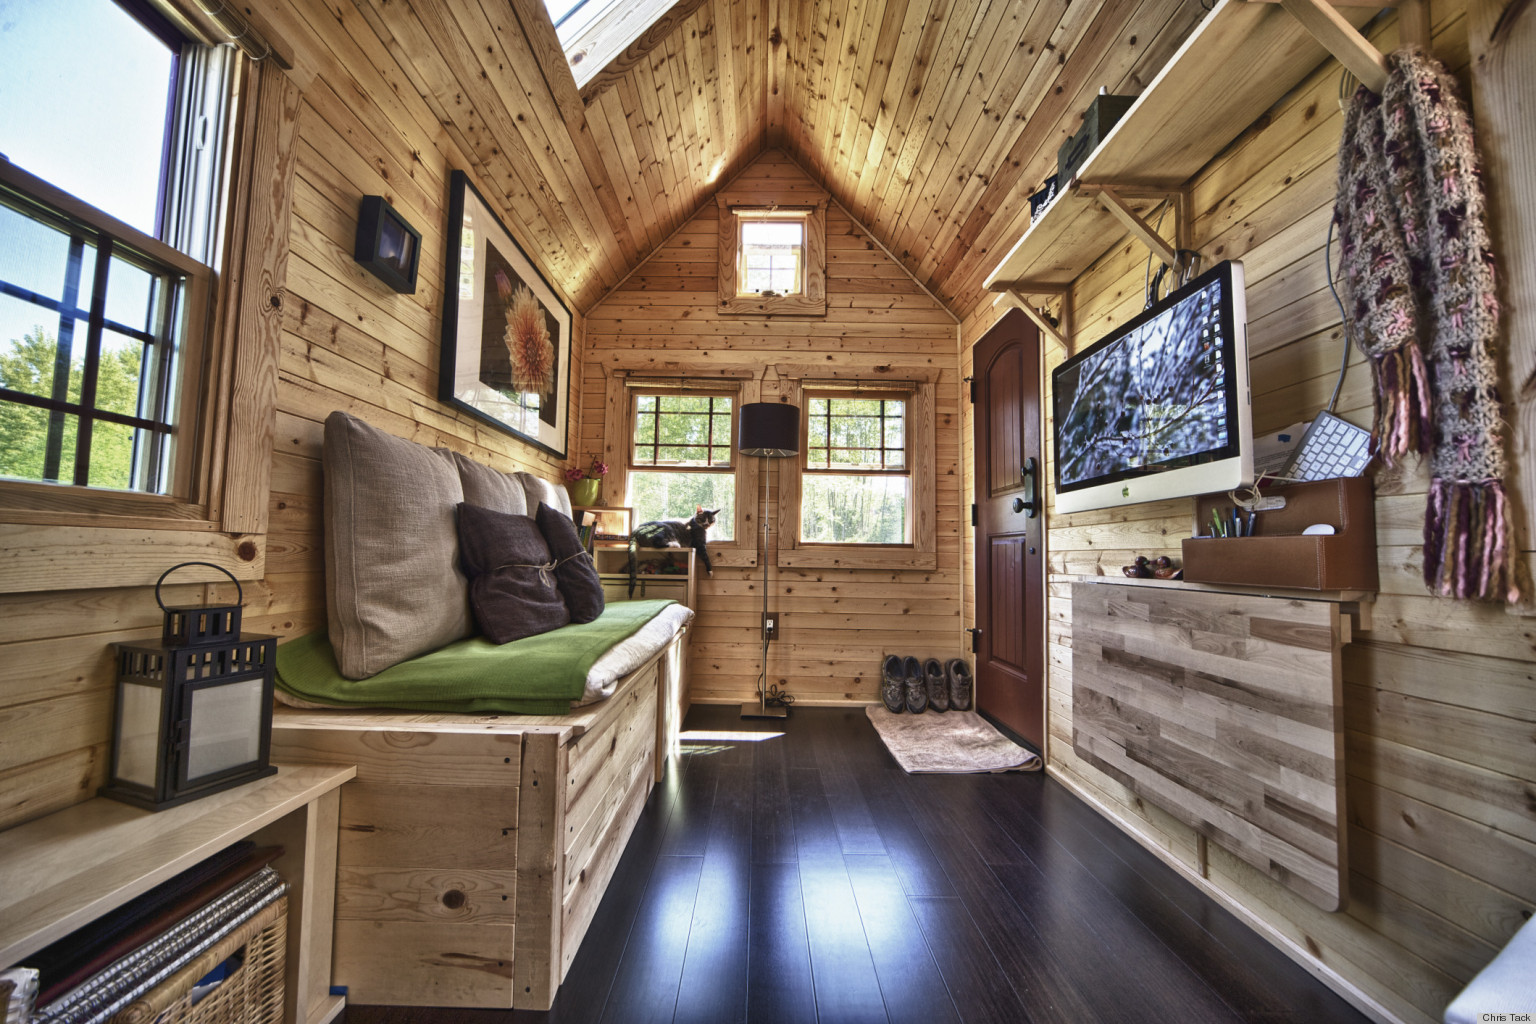 Chris and malissa tack 39 s tiny home transformed this high for Tiny homes on wheels diy